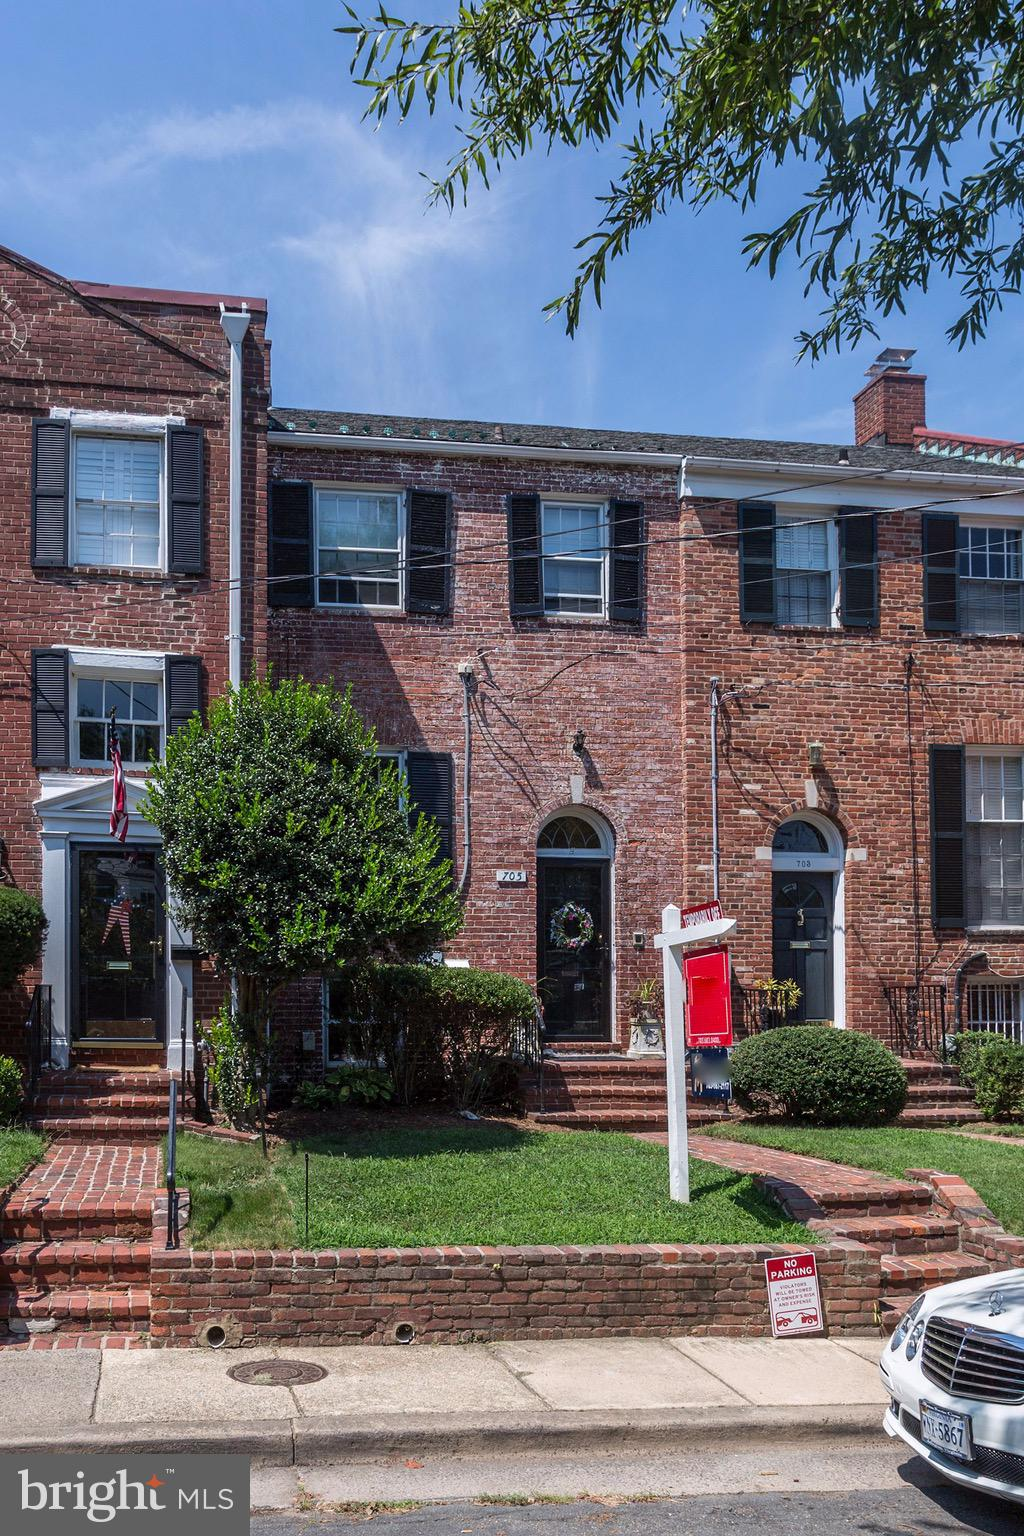 BACK ON THE MARKET! $55K PRICE REDUCTION! Completely renovated, 3-level, brick townhome located in the Yates Gardens neighborhood of the SE Quadrant of Historic Old Town Alexandria! Walls were removed & reconfigured to create new, open floor plans on the 1st & 3rd levels of the home. The 1st Floor comprises heated floors throughout, an open kitchen with a spacious island with granite countertops, a copper forged bar sink, additional storage & seating for four.   The space is complemented by a separate dining area which leads to the outdoor, private oasis - a large brick patio & tiered garden of mature plantings & trees.The living room is light-filled & open with floor-to-ceiling windows, a wood-burning fireplace, & a reading cove bookended with built-ins. The 3rd Floor comprises a master bedroom with en-suite bath & a double-sided, walk-in closet. The owner added a 2nd full bath to complement the guest bedroom. The attic space has been transformed into an accessible space with pull-down steps & sub-flooring to provide off-season storage. There is one assigned off-street parking space located at the foot of the front door. No HOA!  This home has it all!